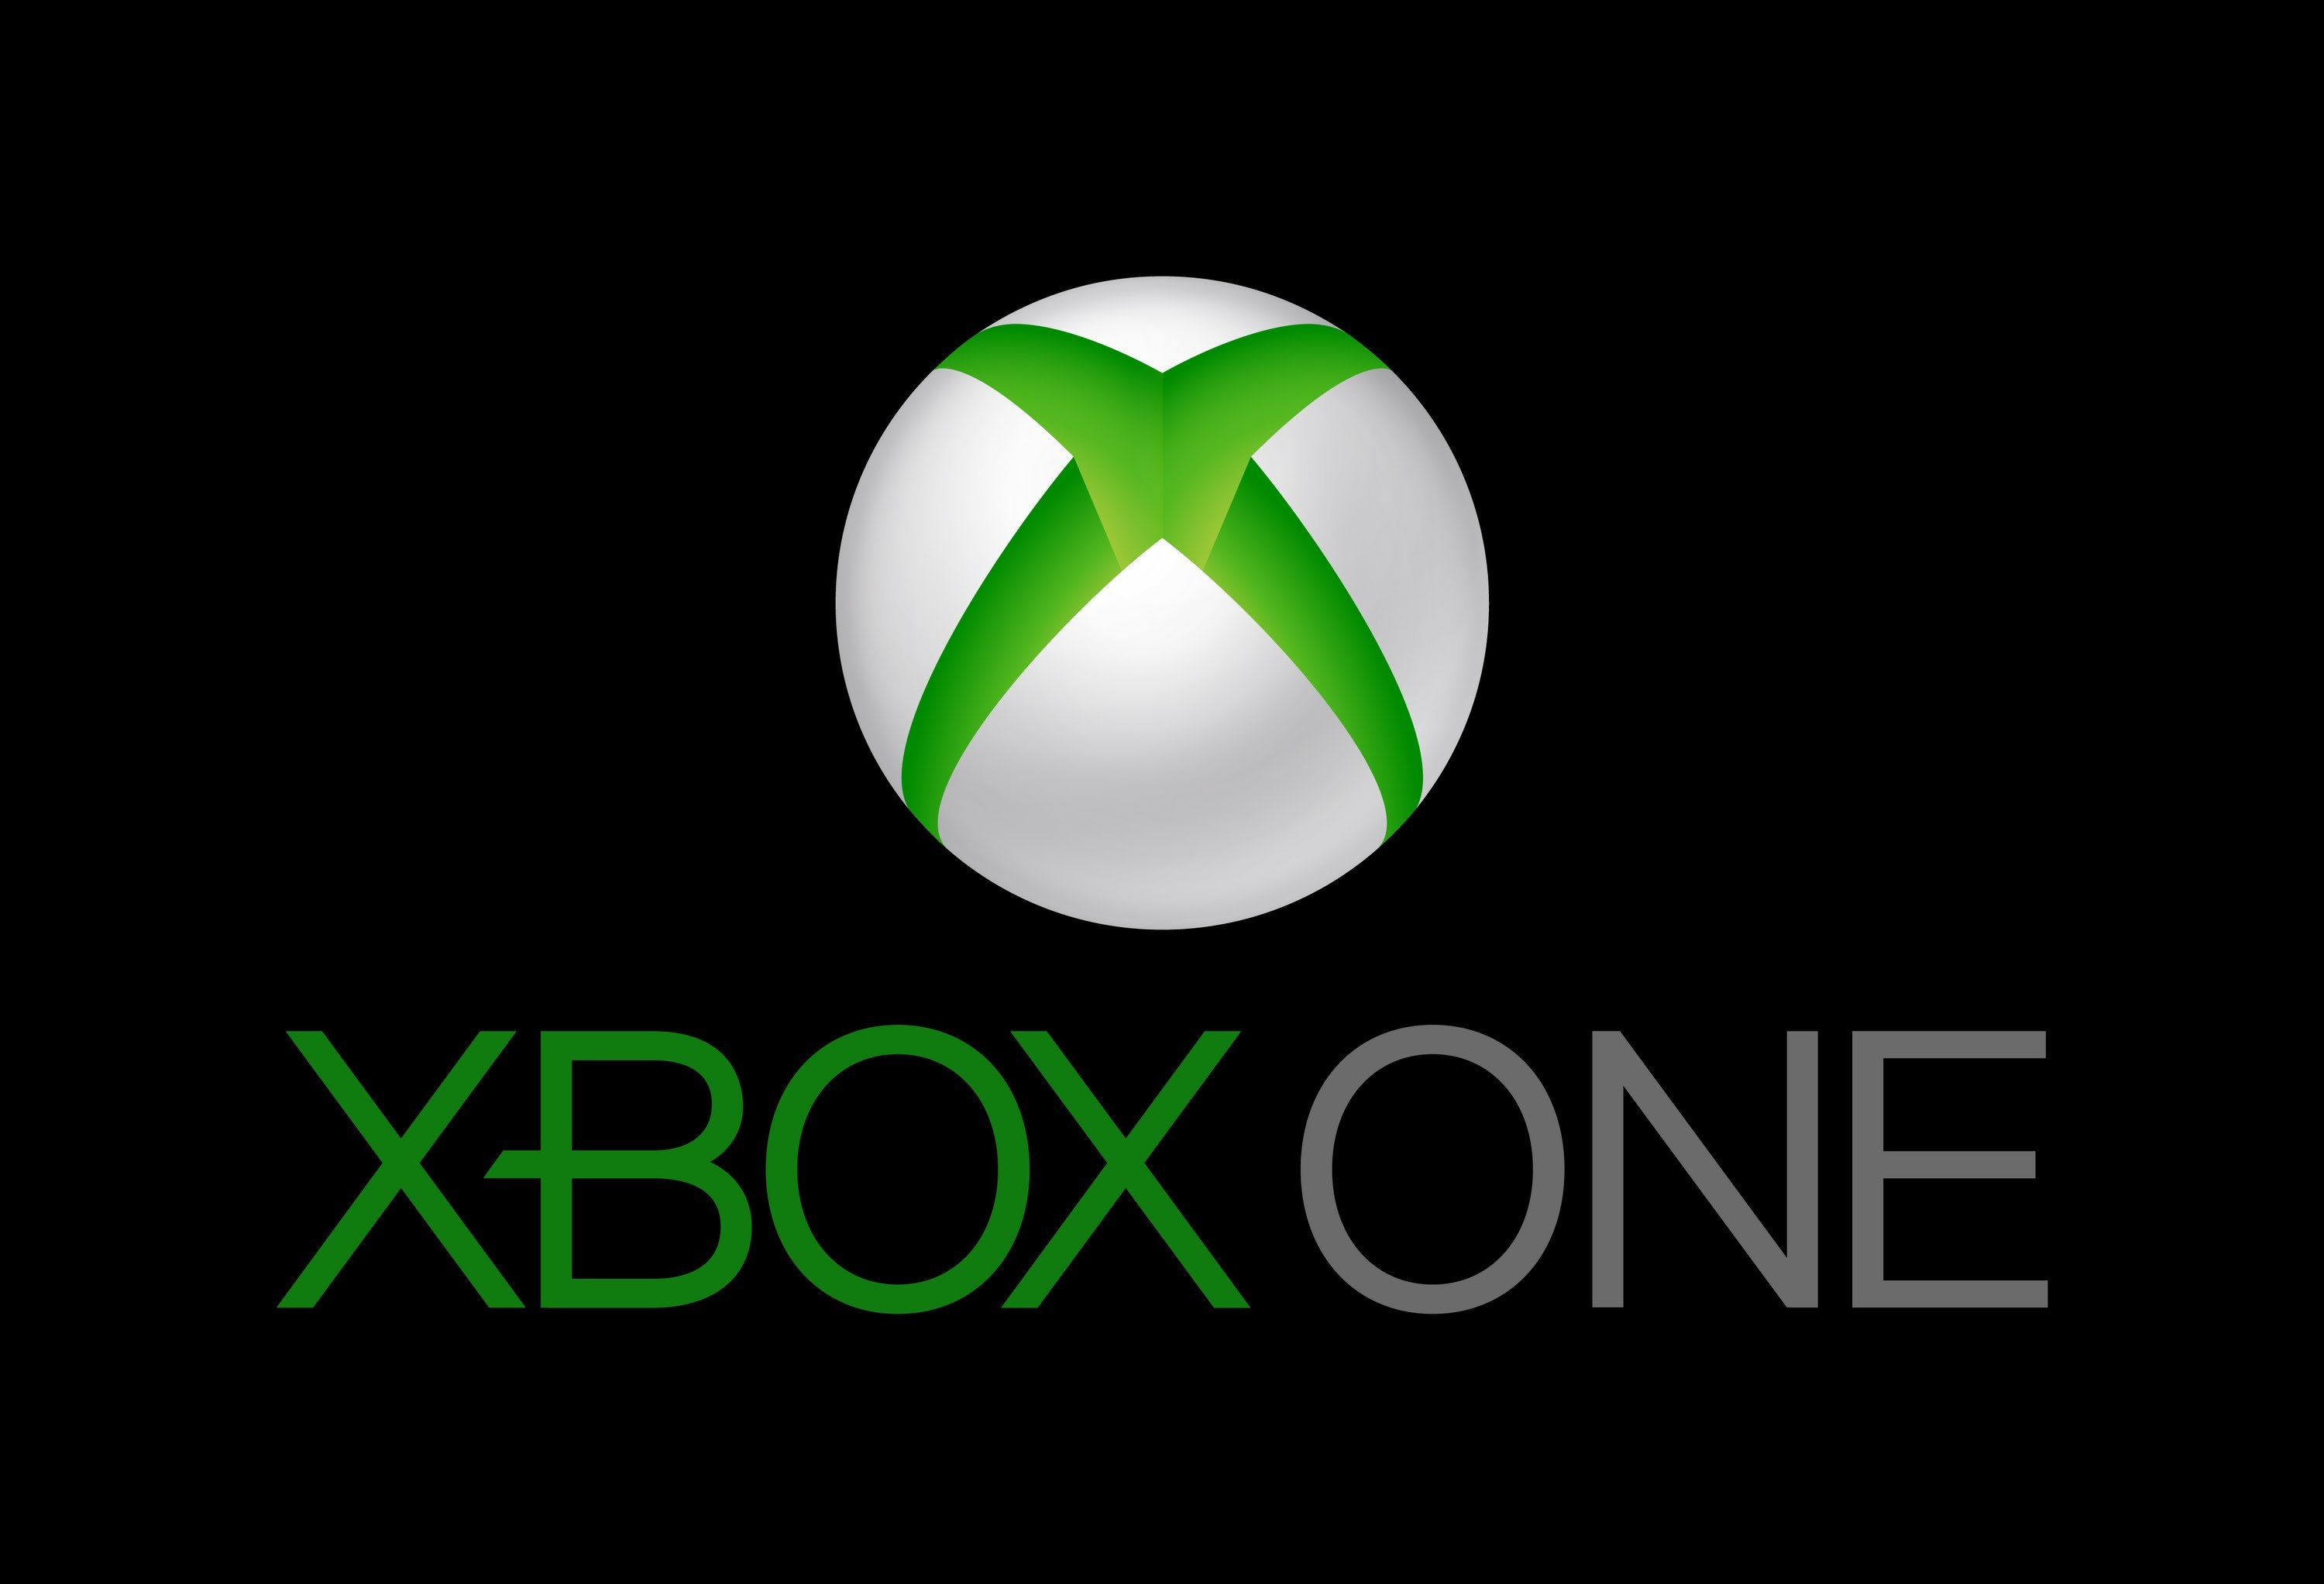 Xbox One Wallpapers Hd: Xbox One Logo HD Wallpaper